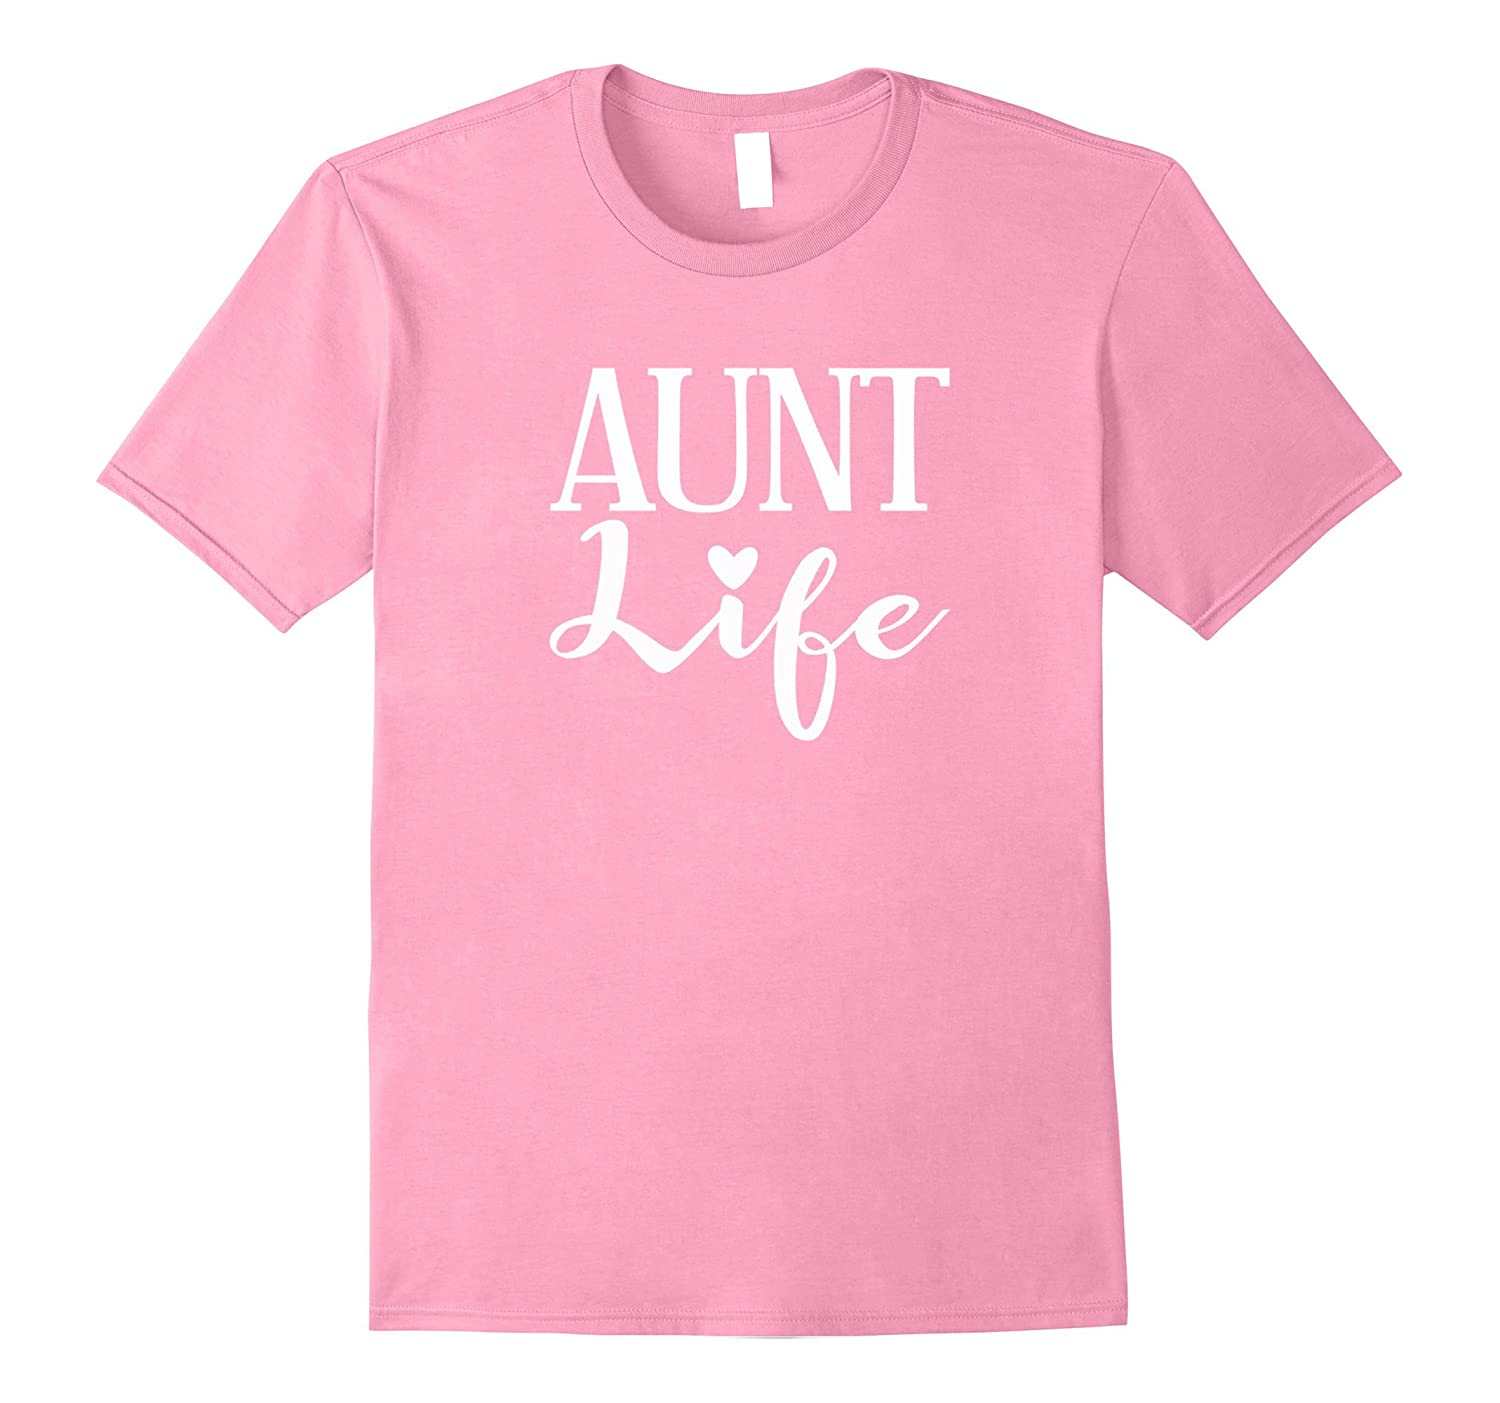 Aunt Life Tshirt Mothers Day Birthday Gift Idea PL